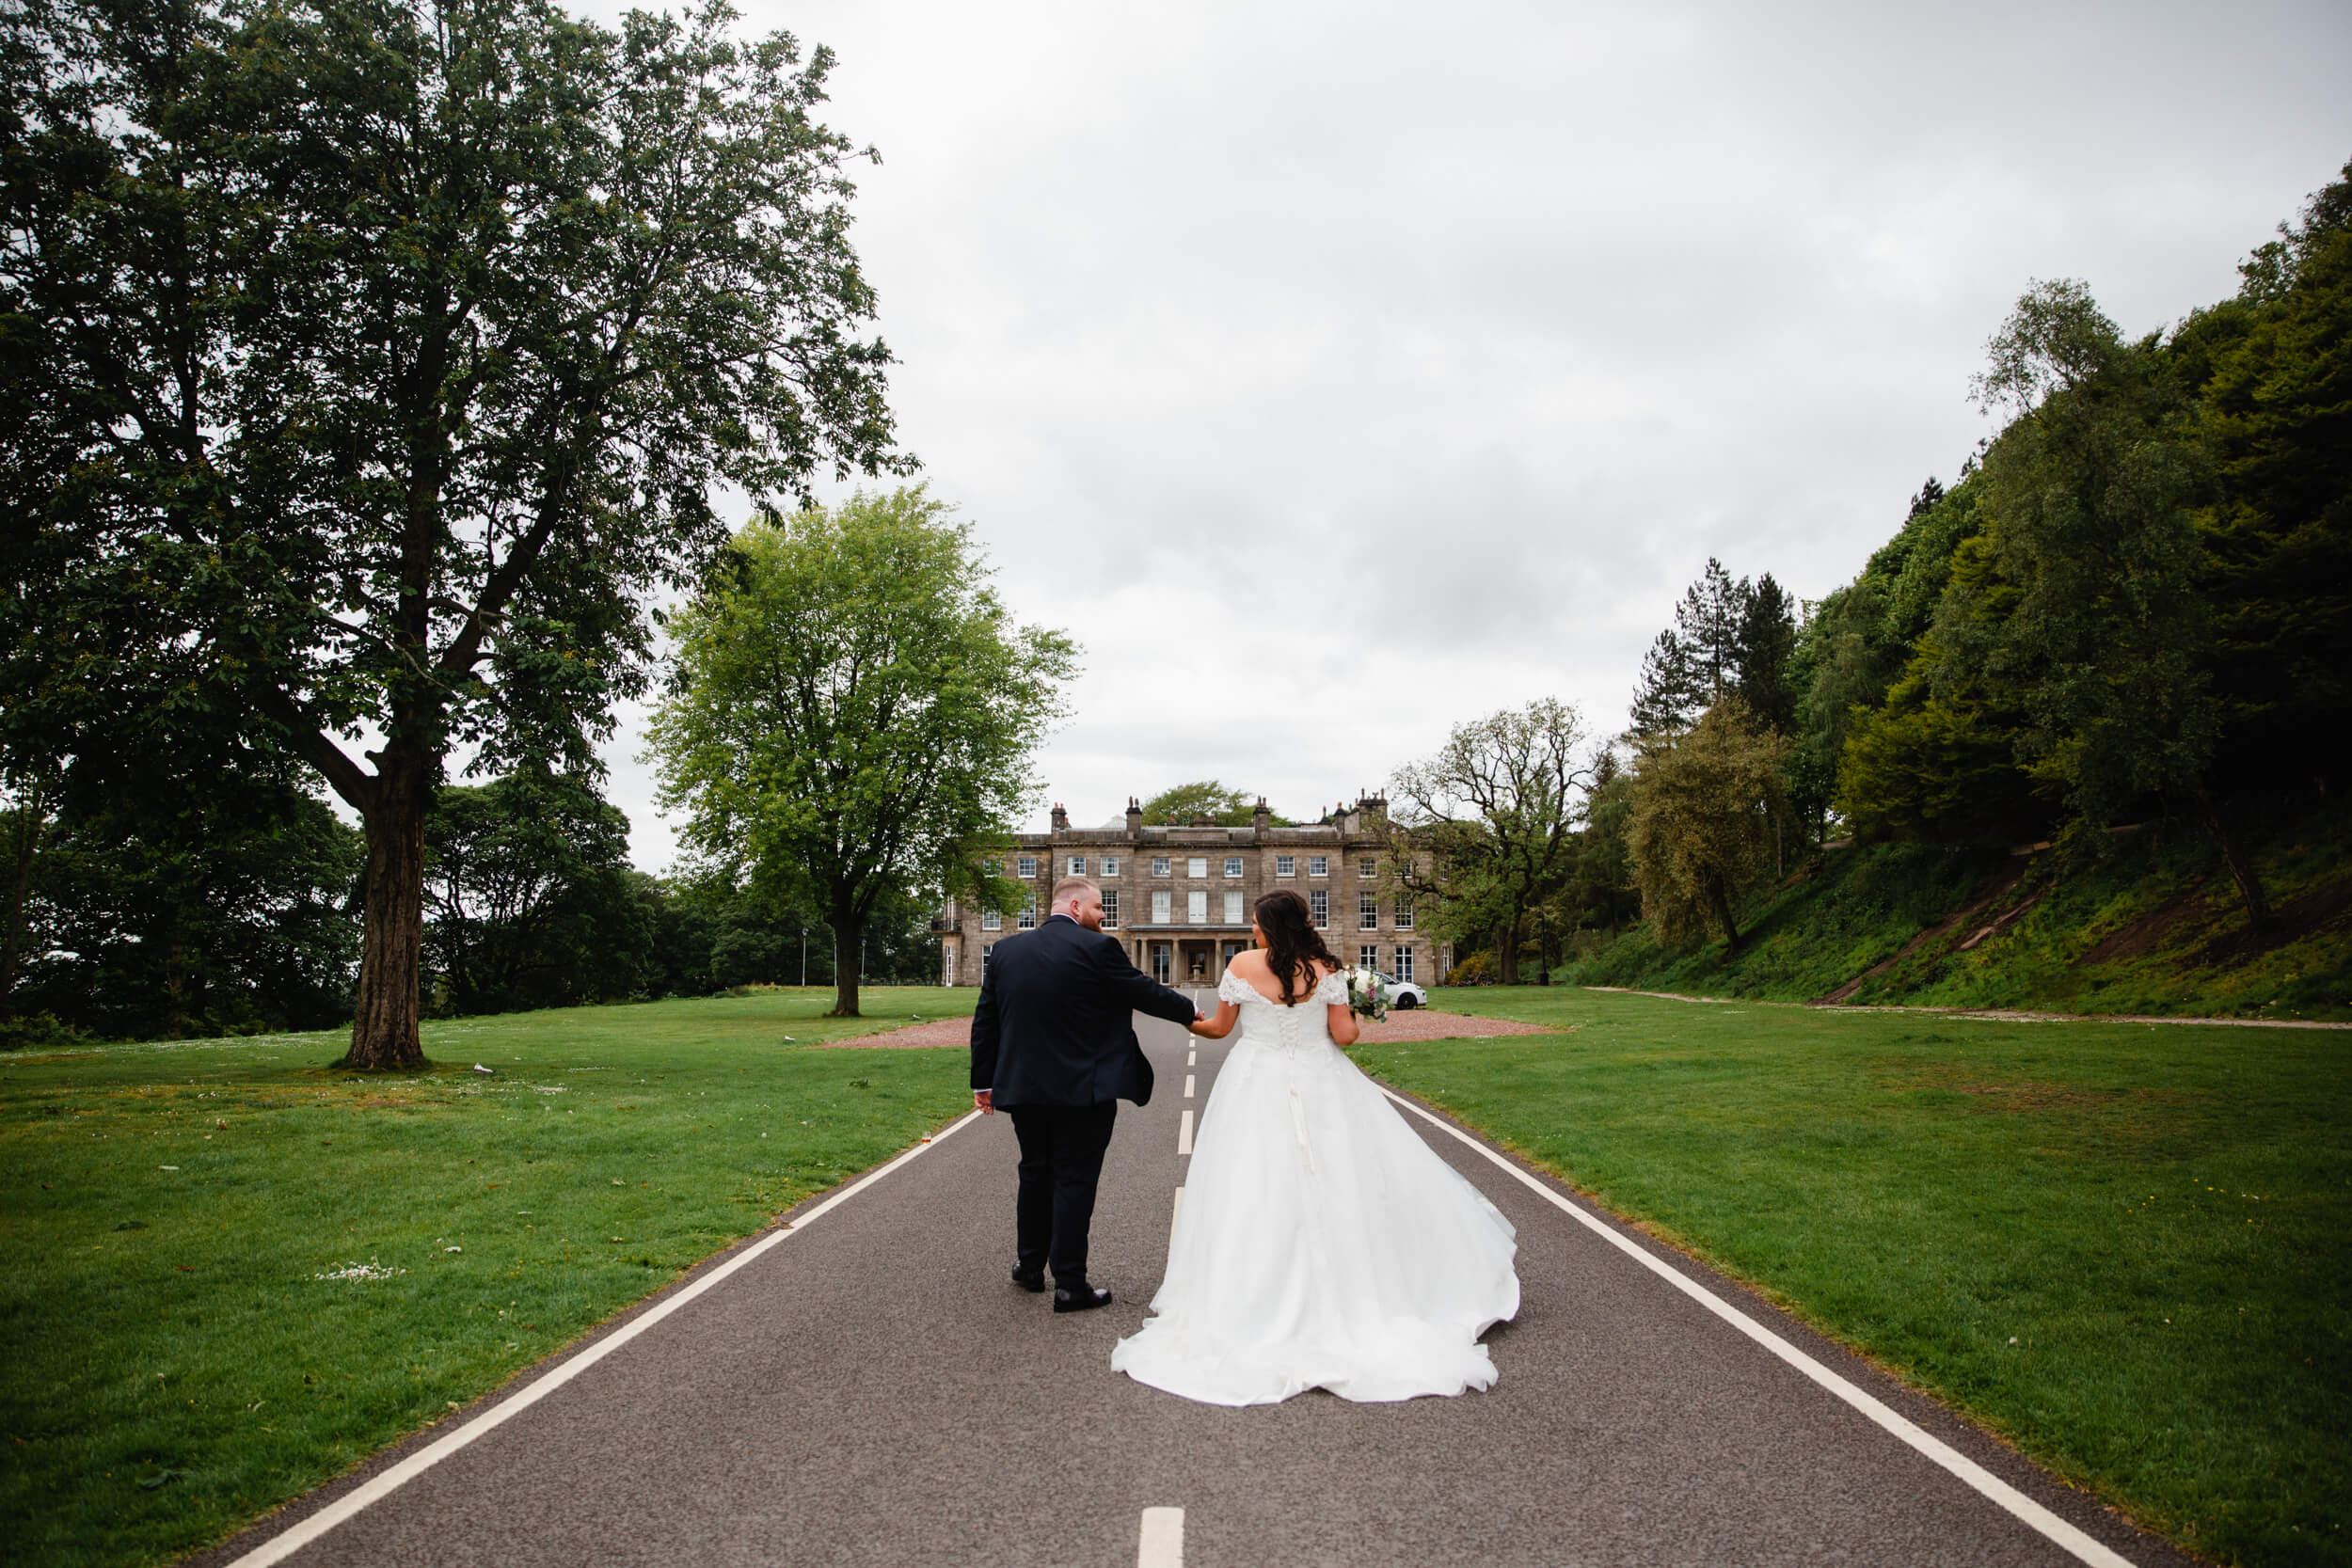 Haigh_Hall_Wedding_Venue.jpg